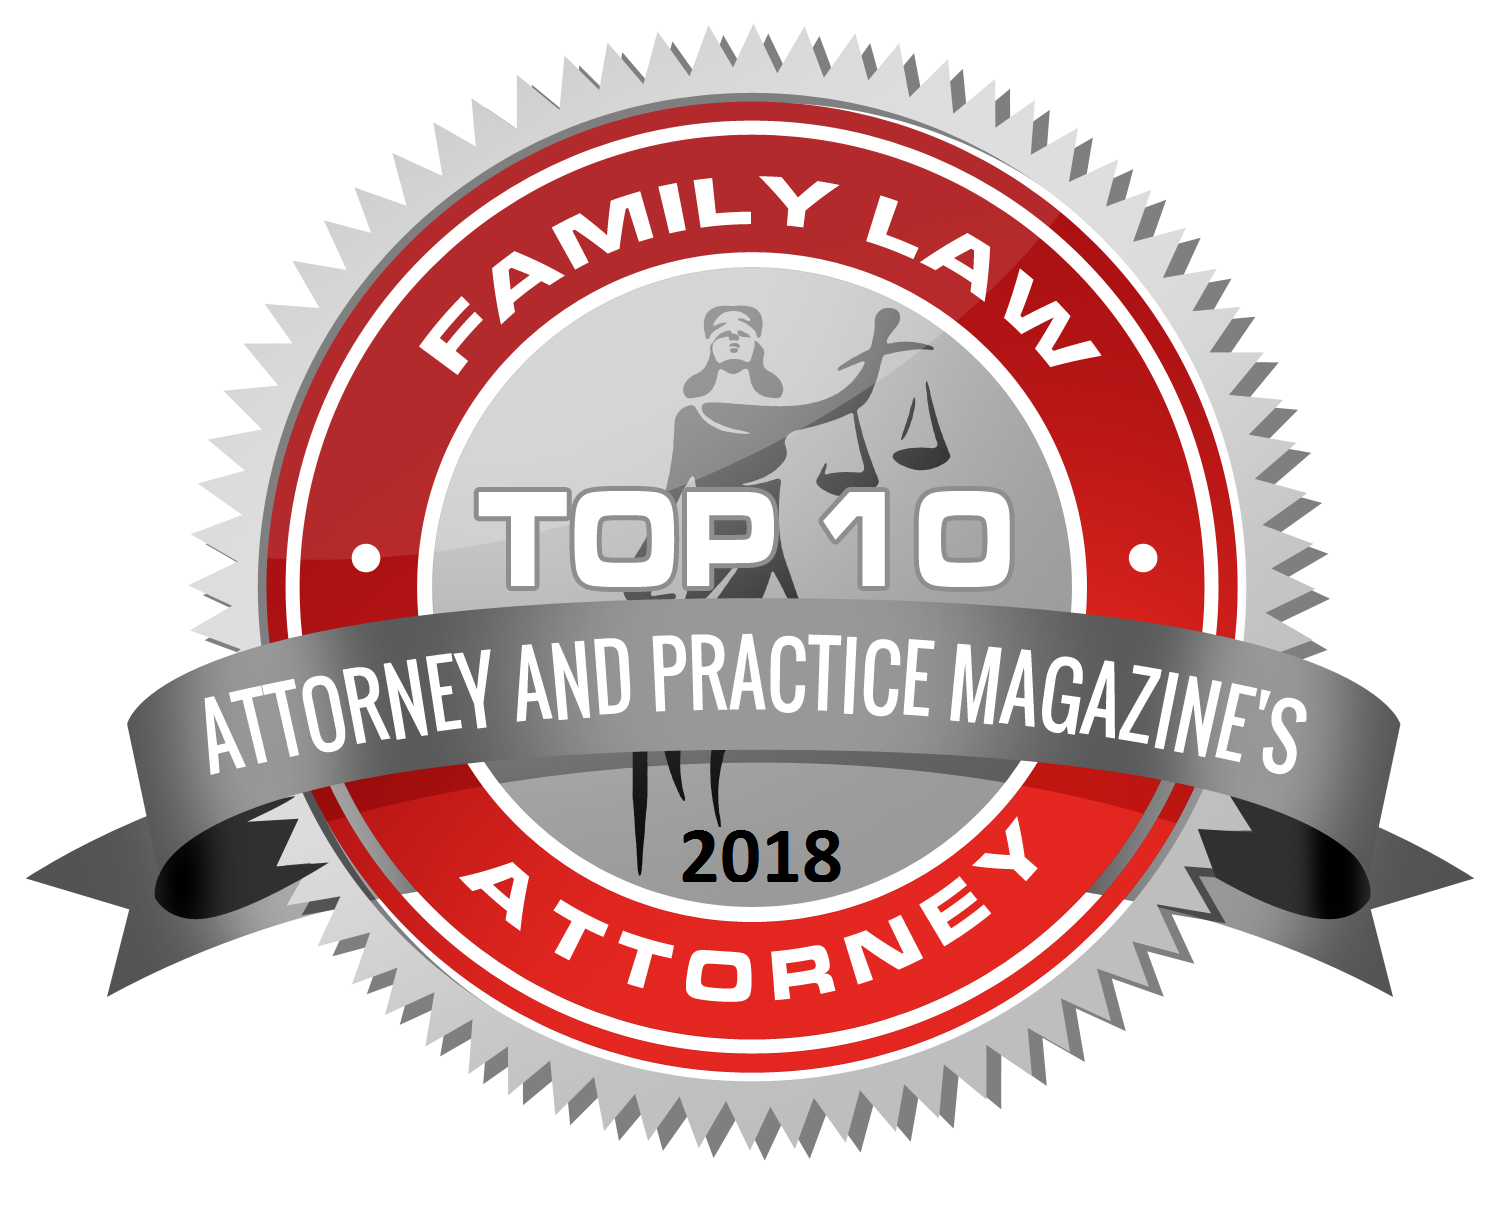 Top 10 Family law badge